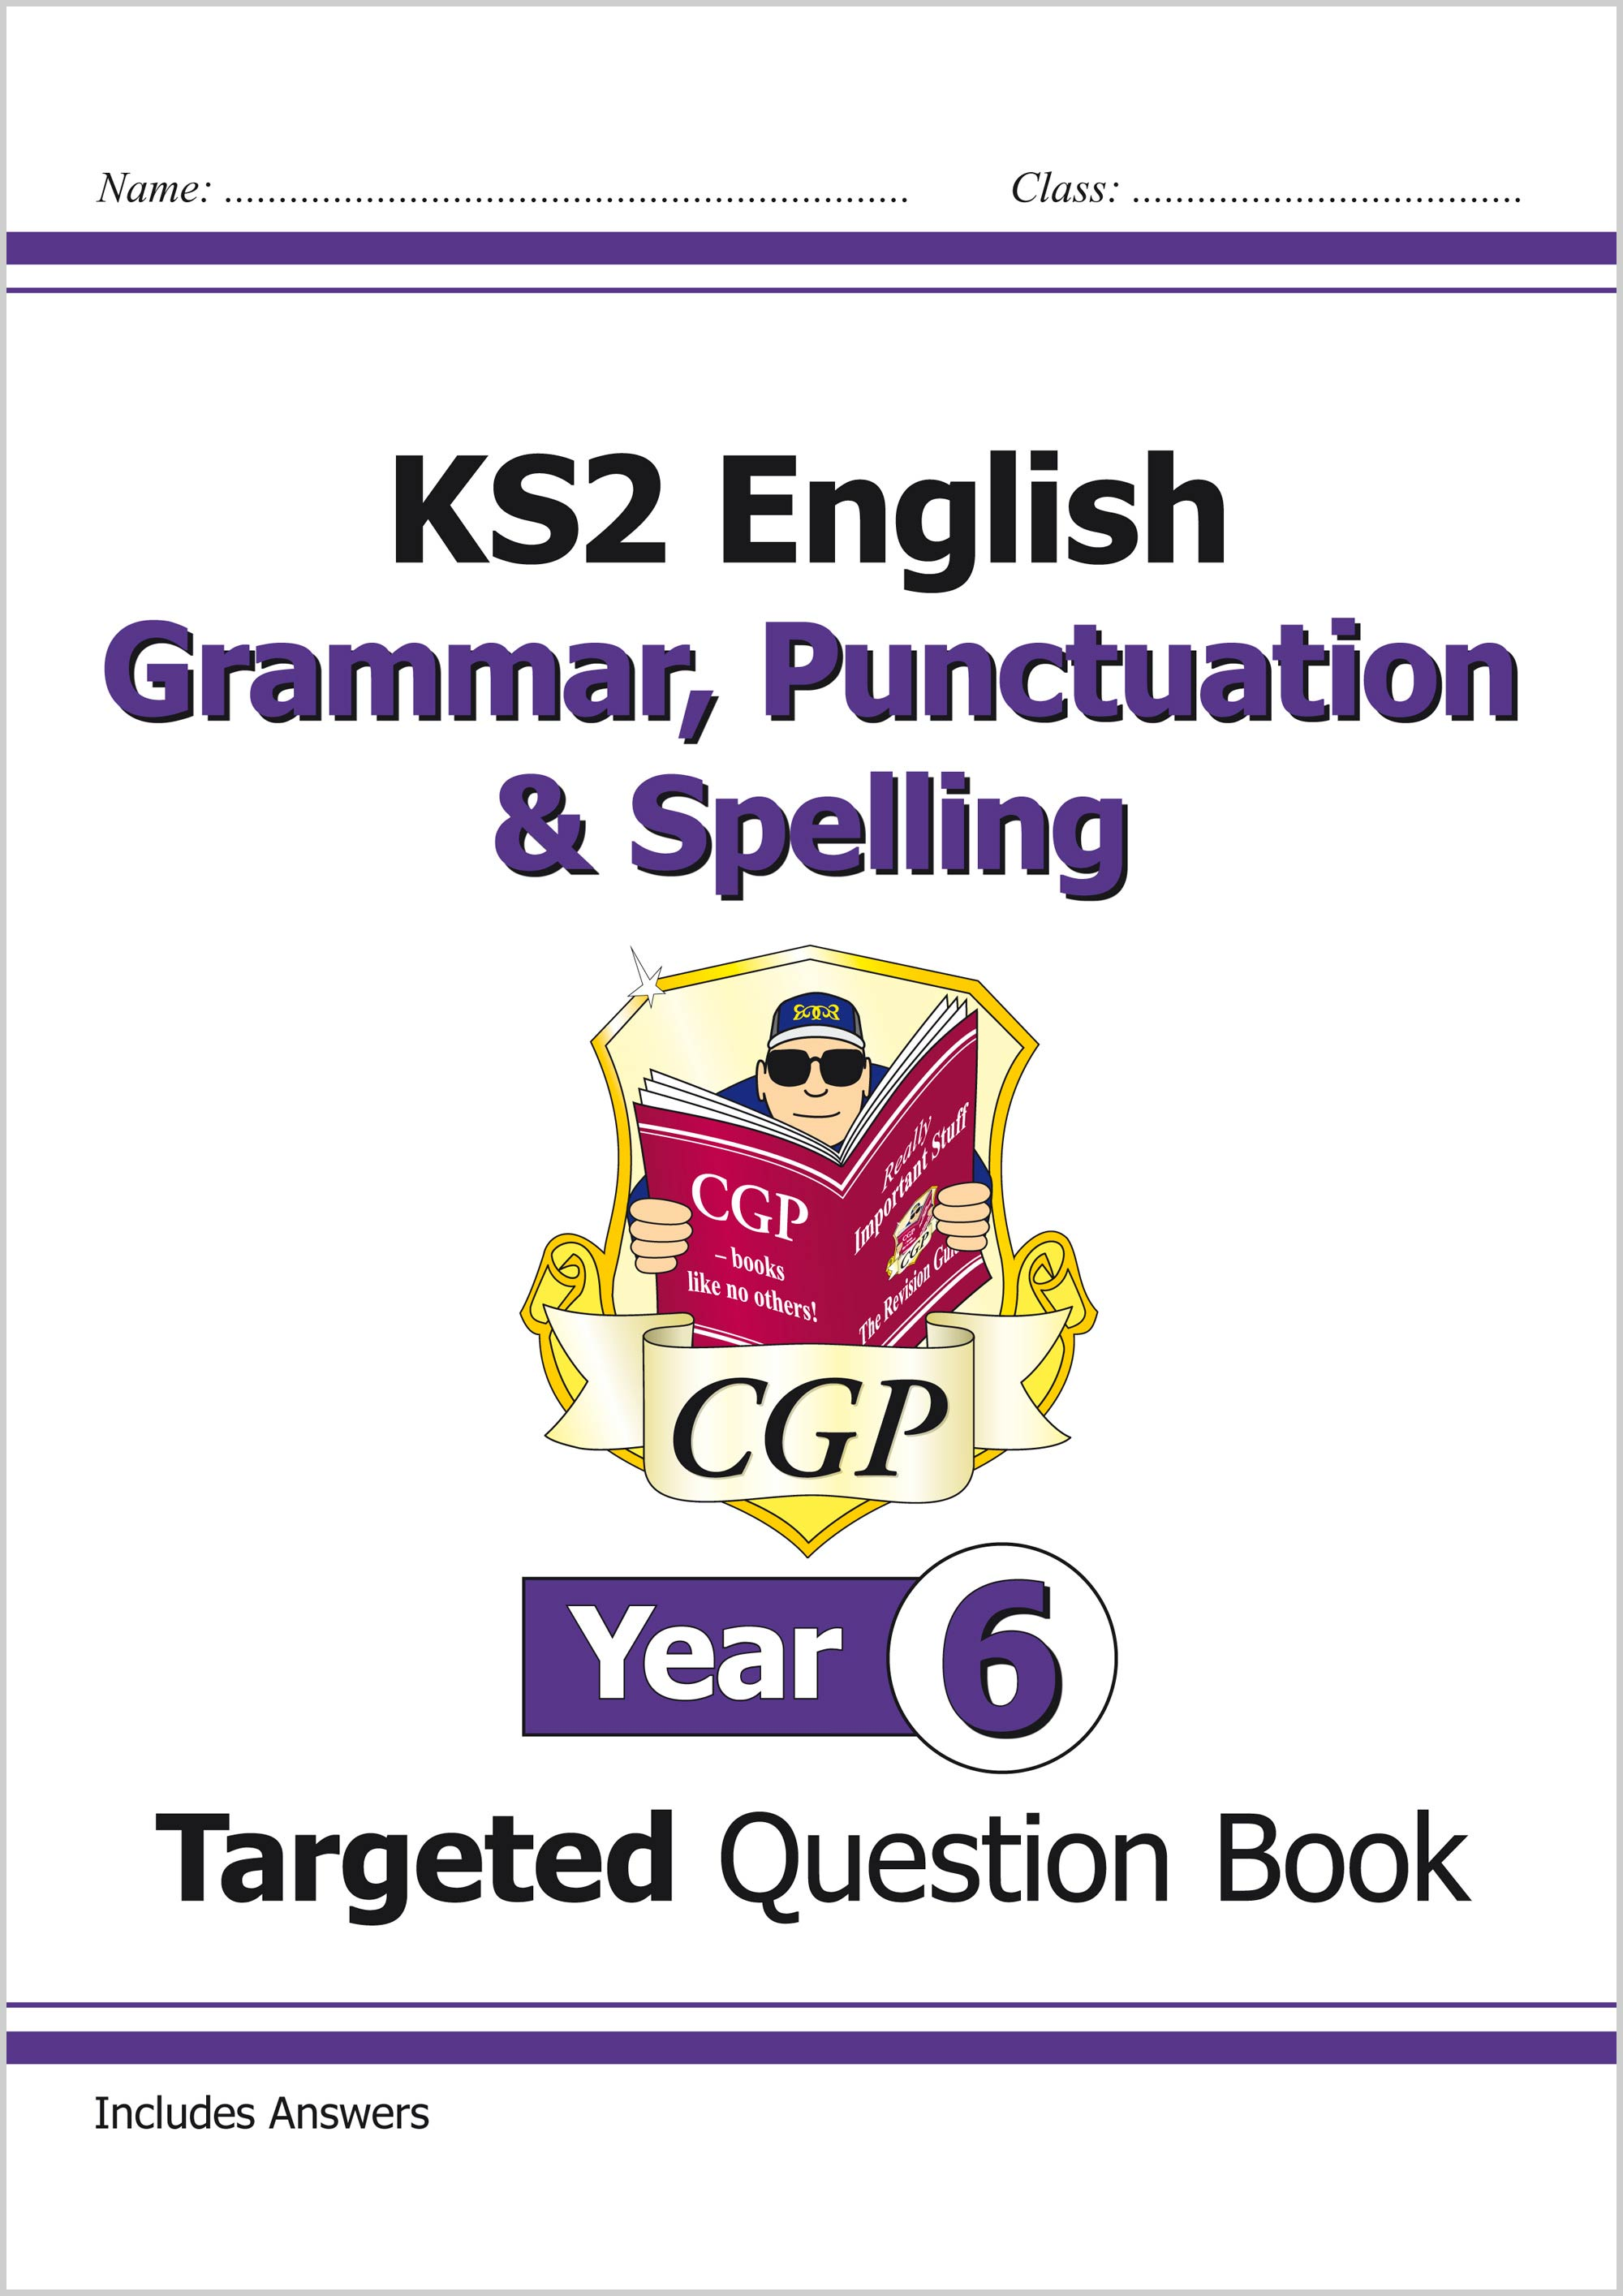 E6W22 - KS2 English Targeted Question Book: Grammar, Punctuation & Spelling - Year 6